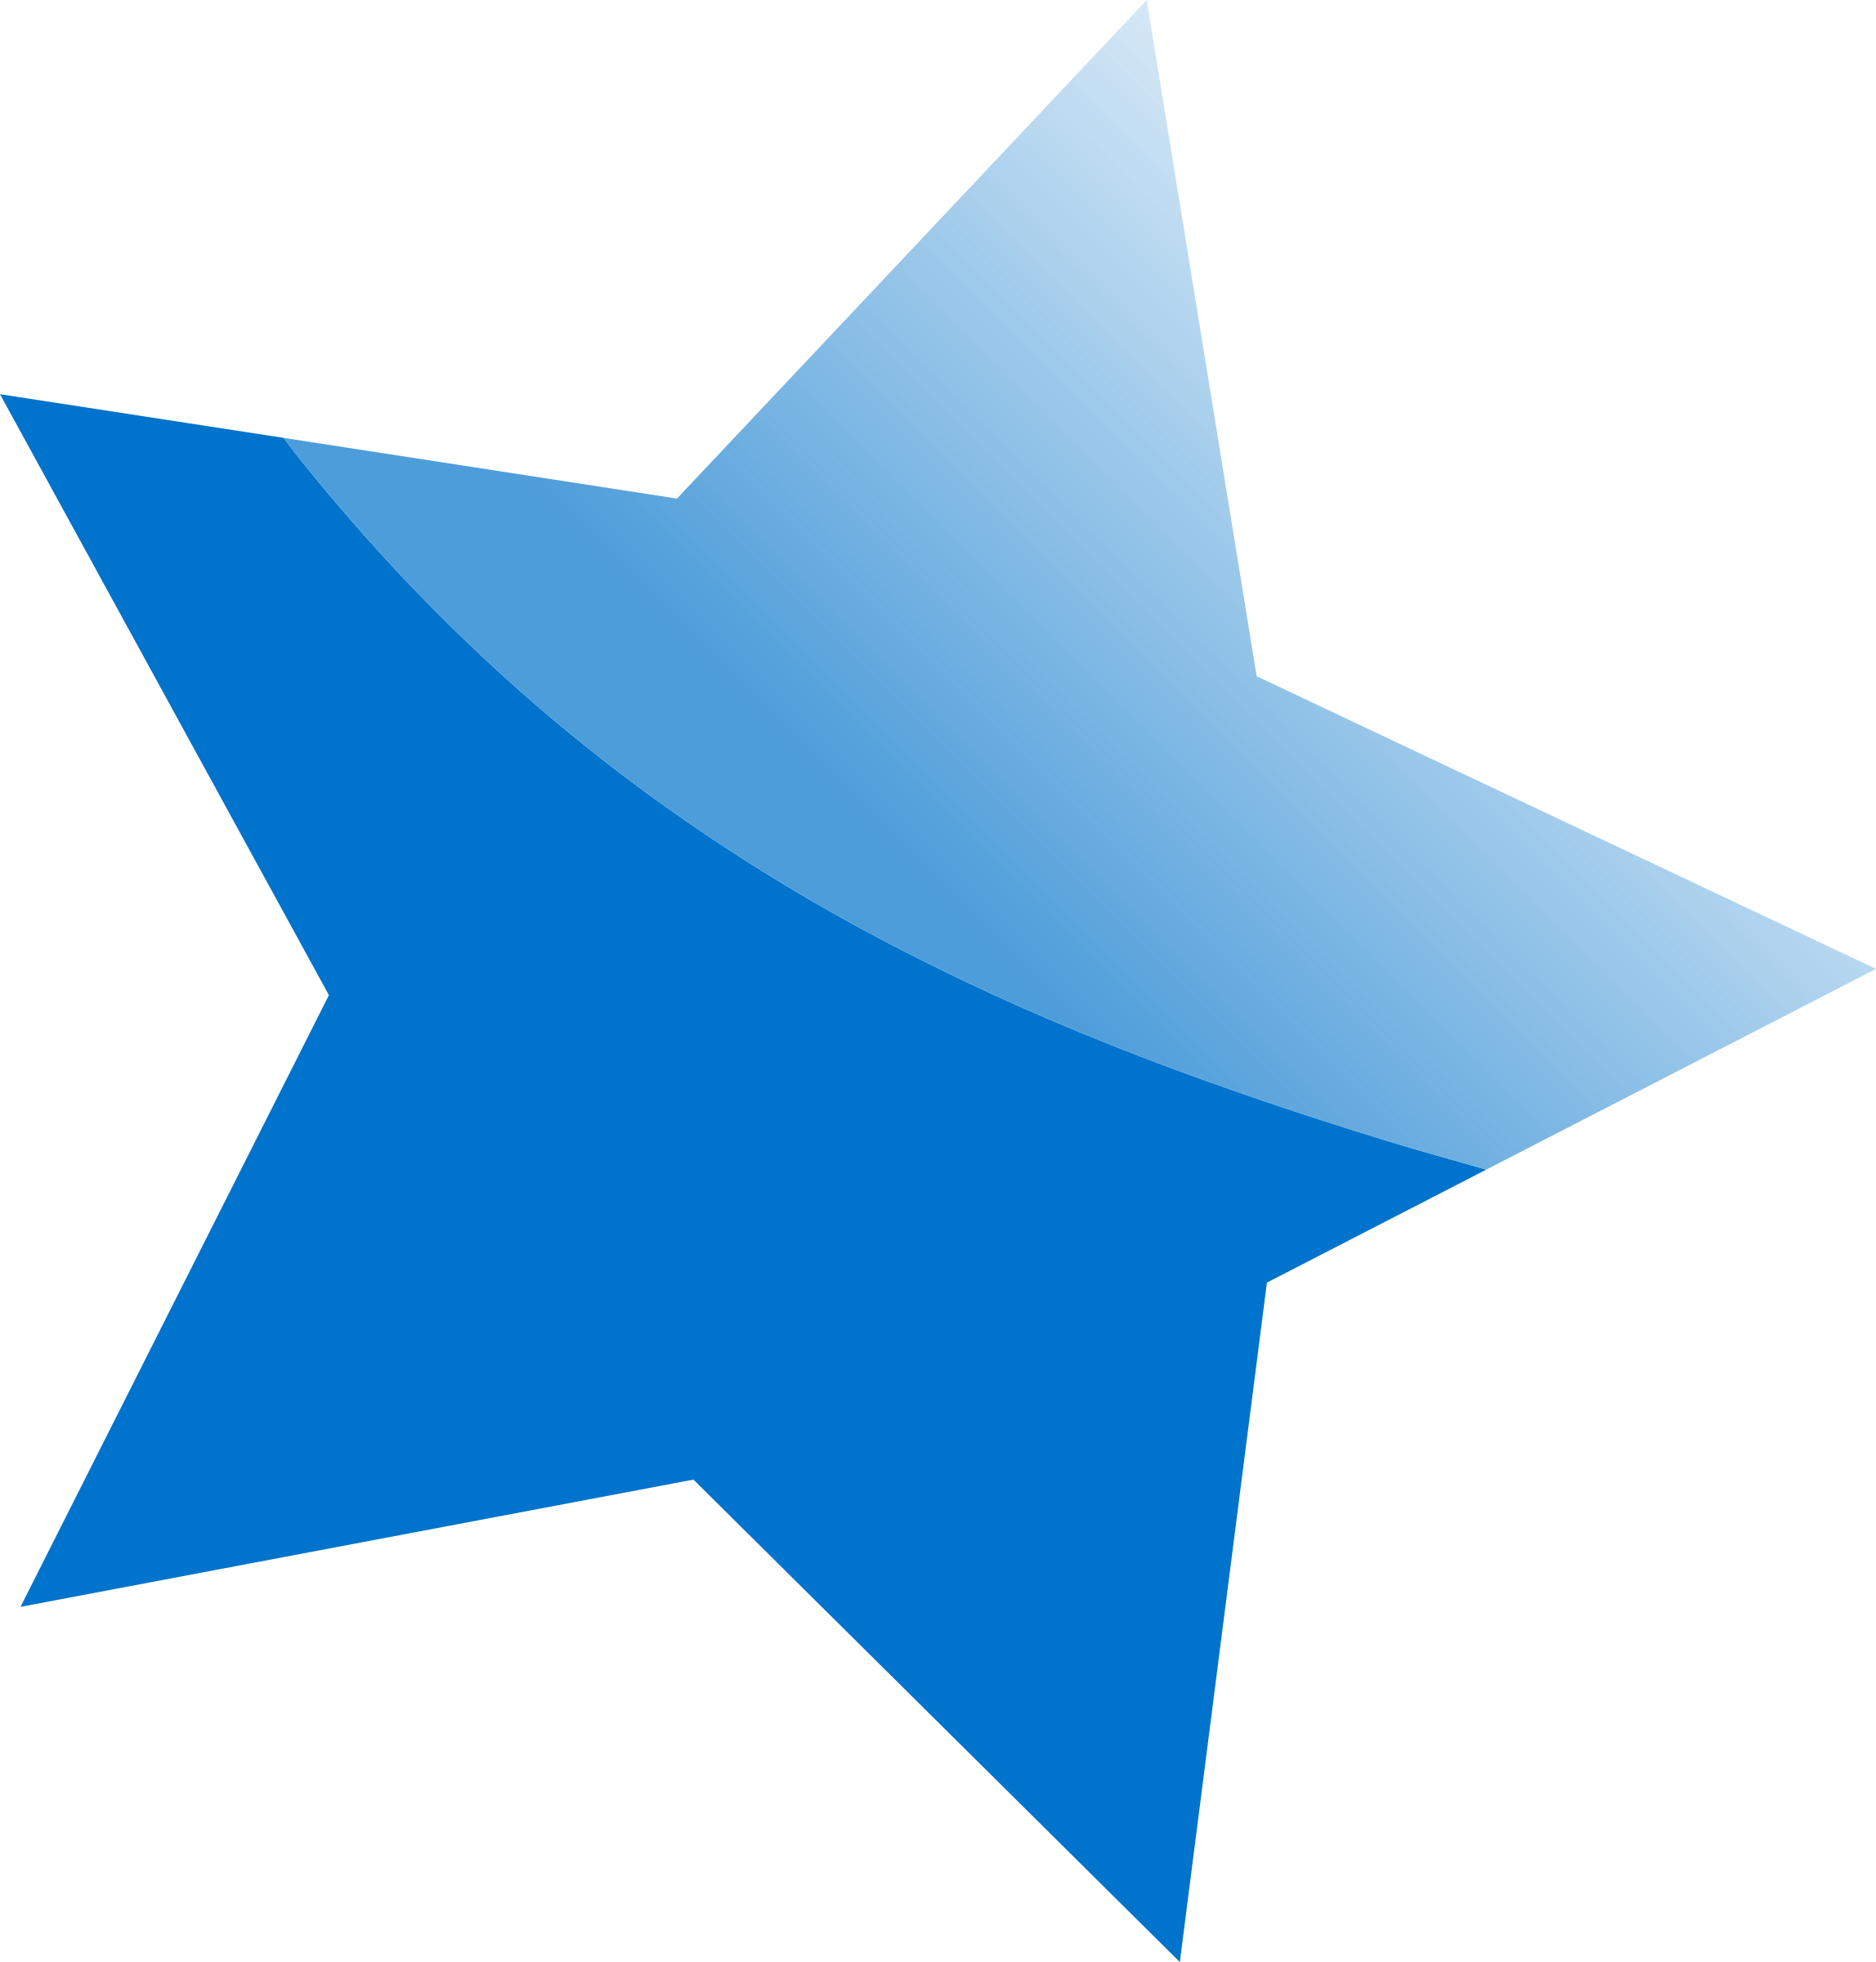 Blue Star by natanteam